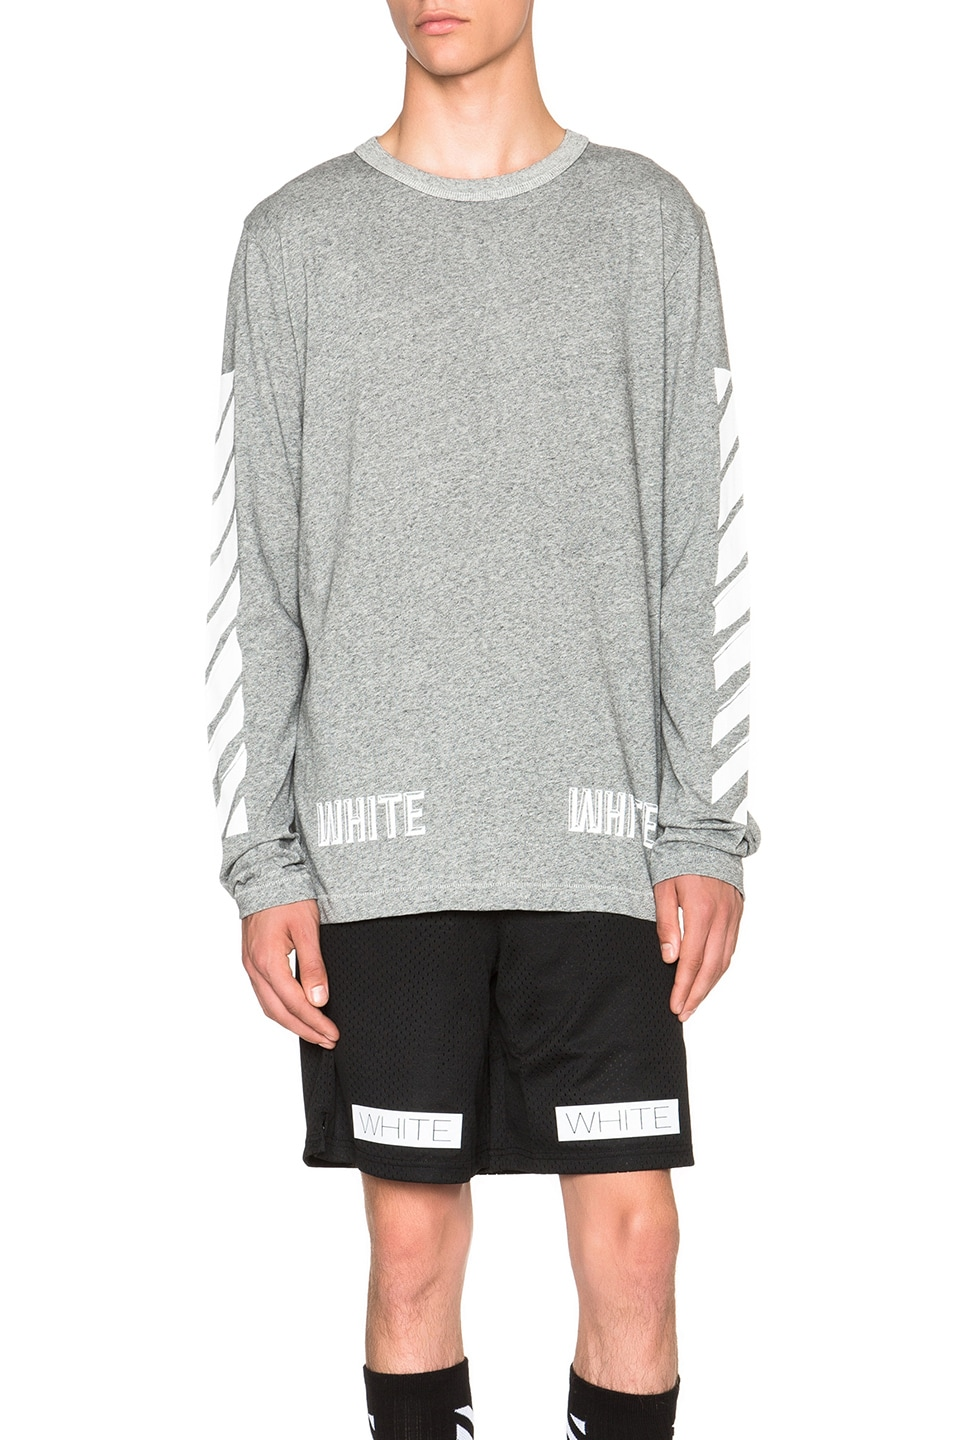 4ffddd0d61d4 Image 1 of OFF-WHITE 3D White Long Sleeve Tee in Grey